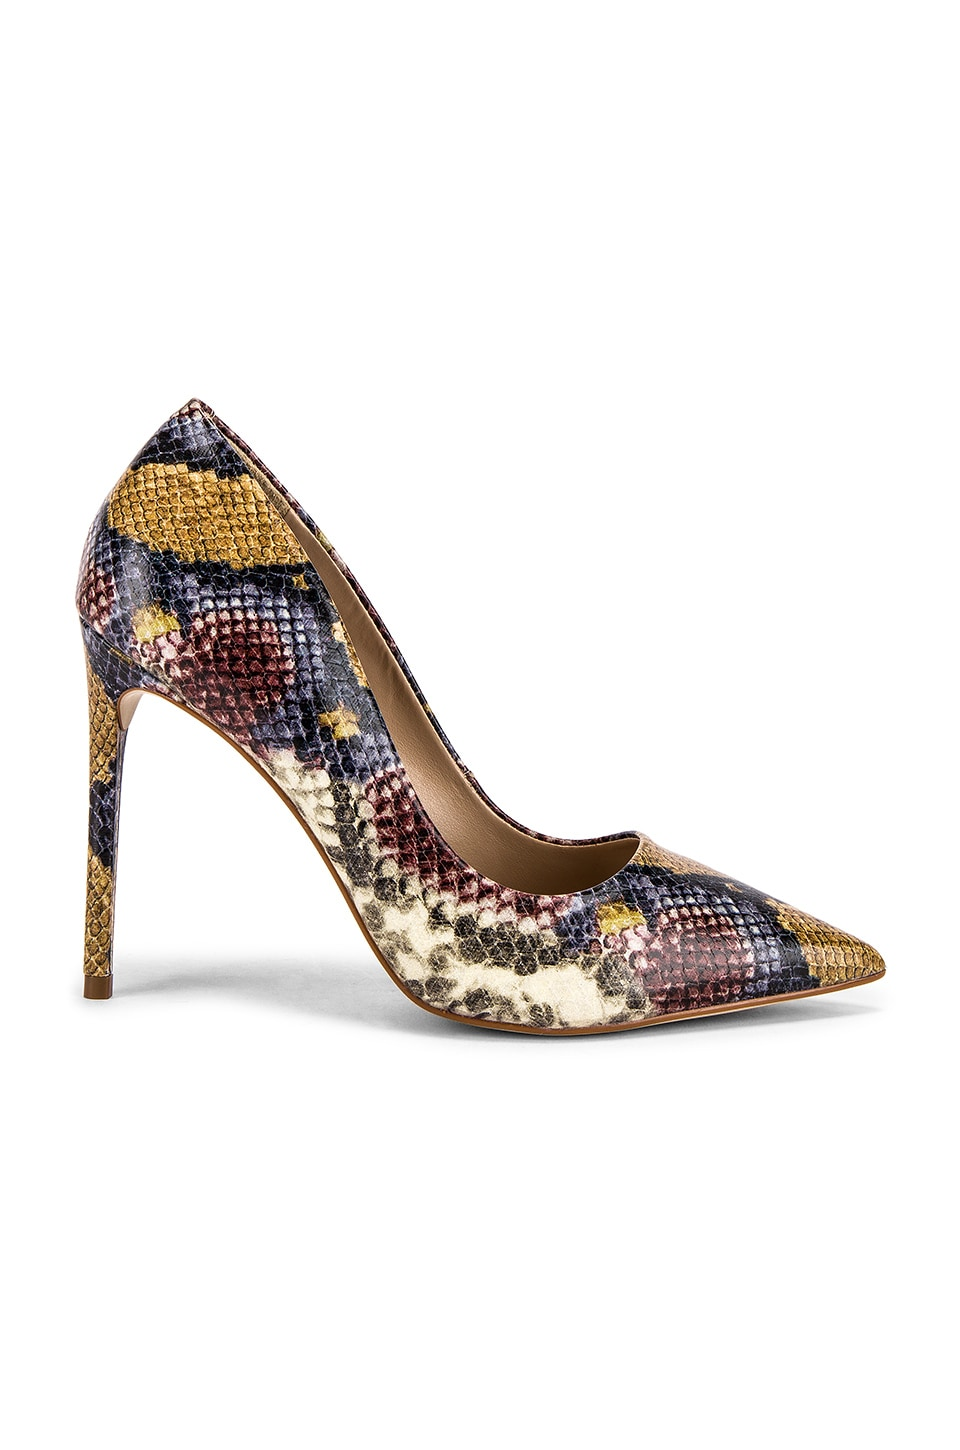 Steve Madden Vala Pump in Multi Snake